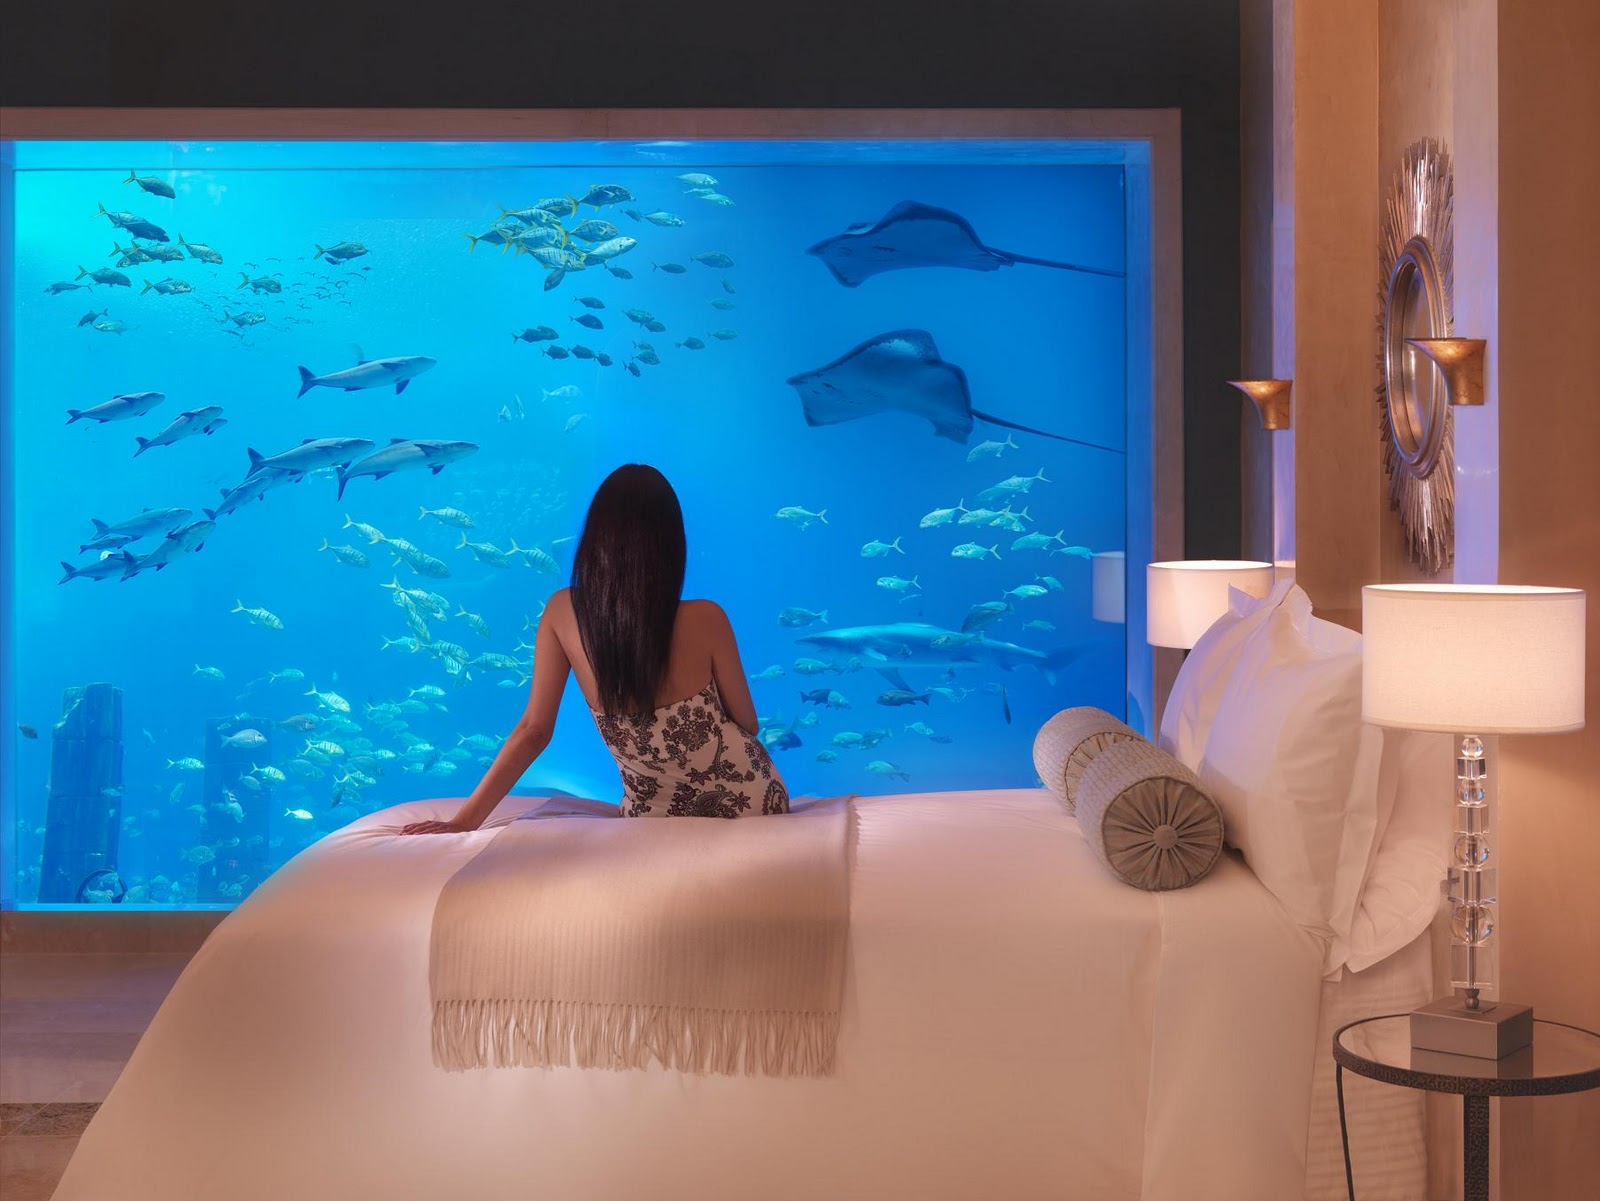 The 7 Most Expensive Hotel Rooms in UAE's Atlantis Dubai11